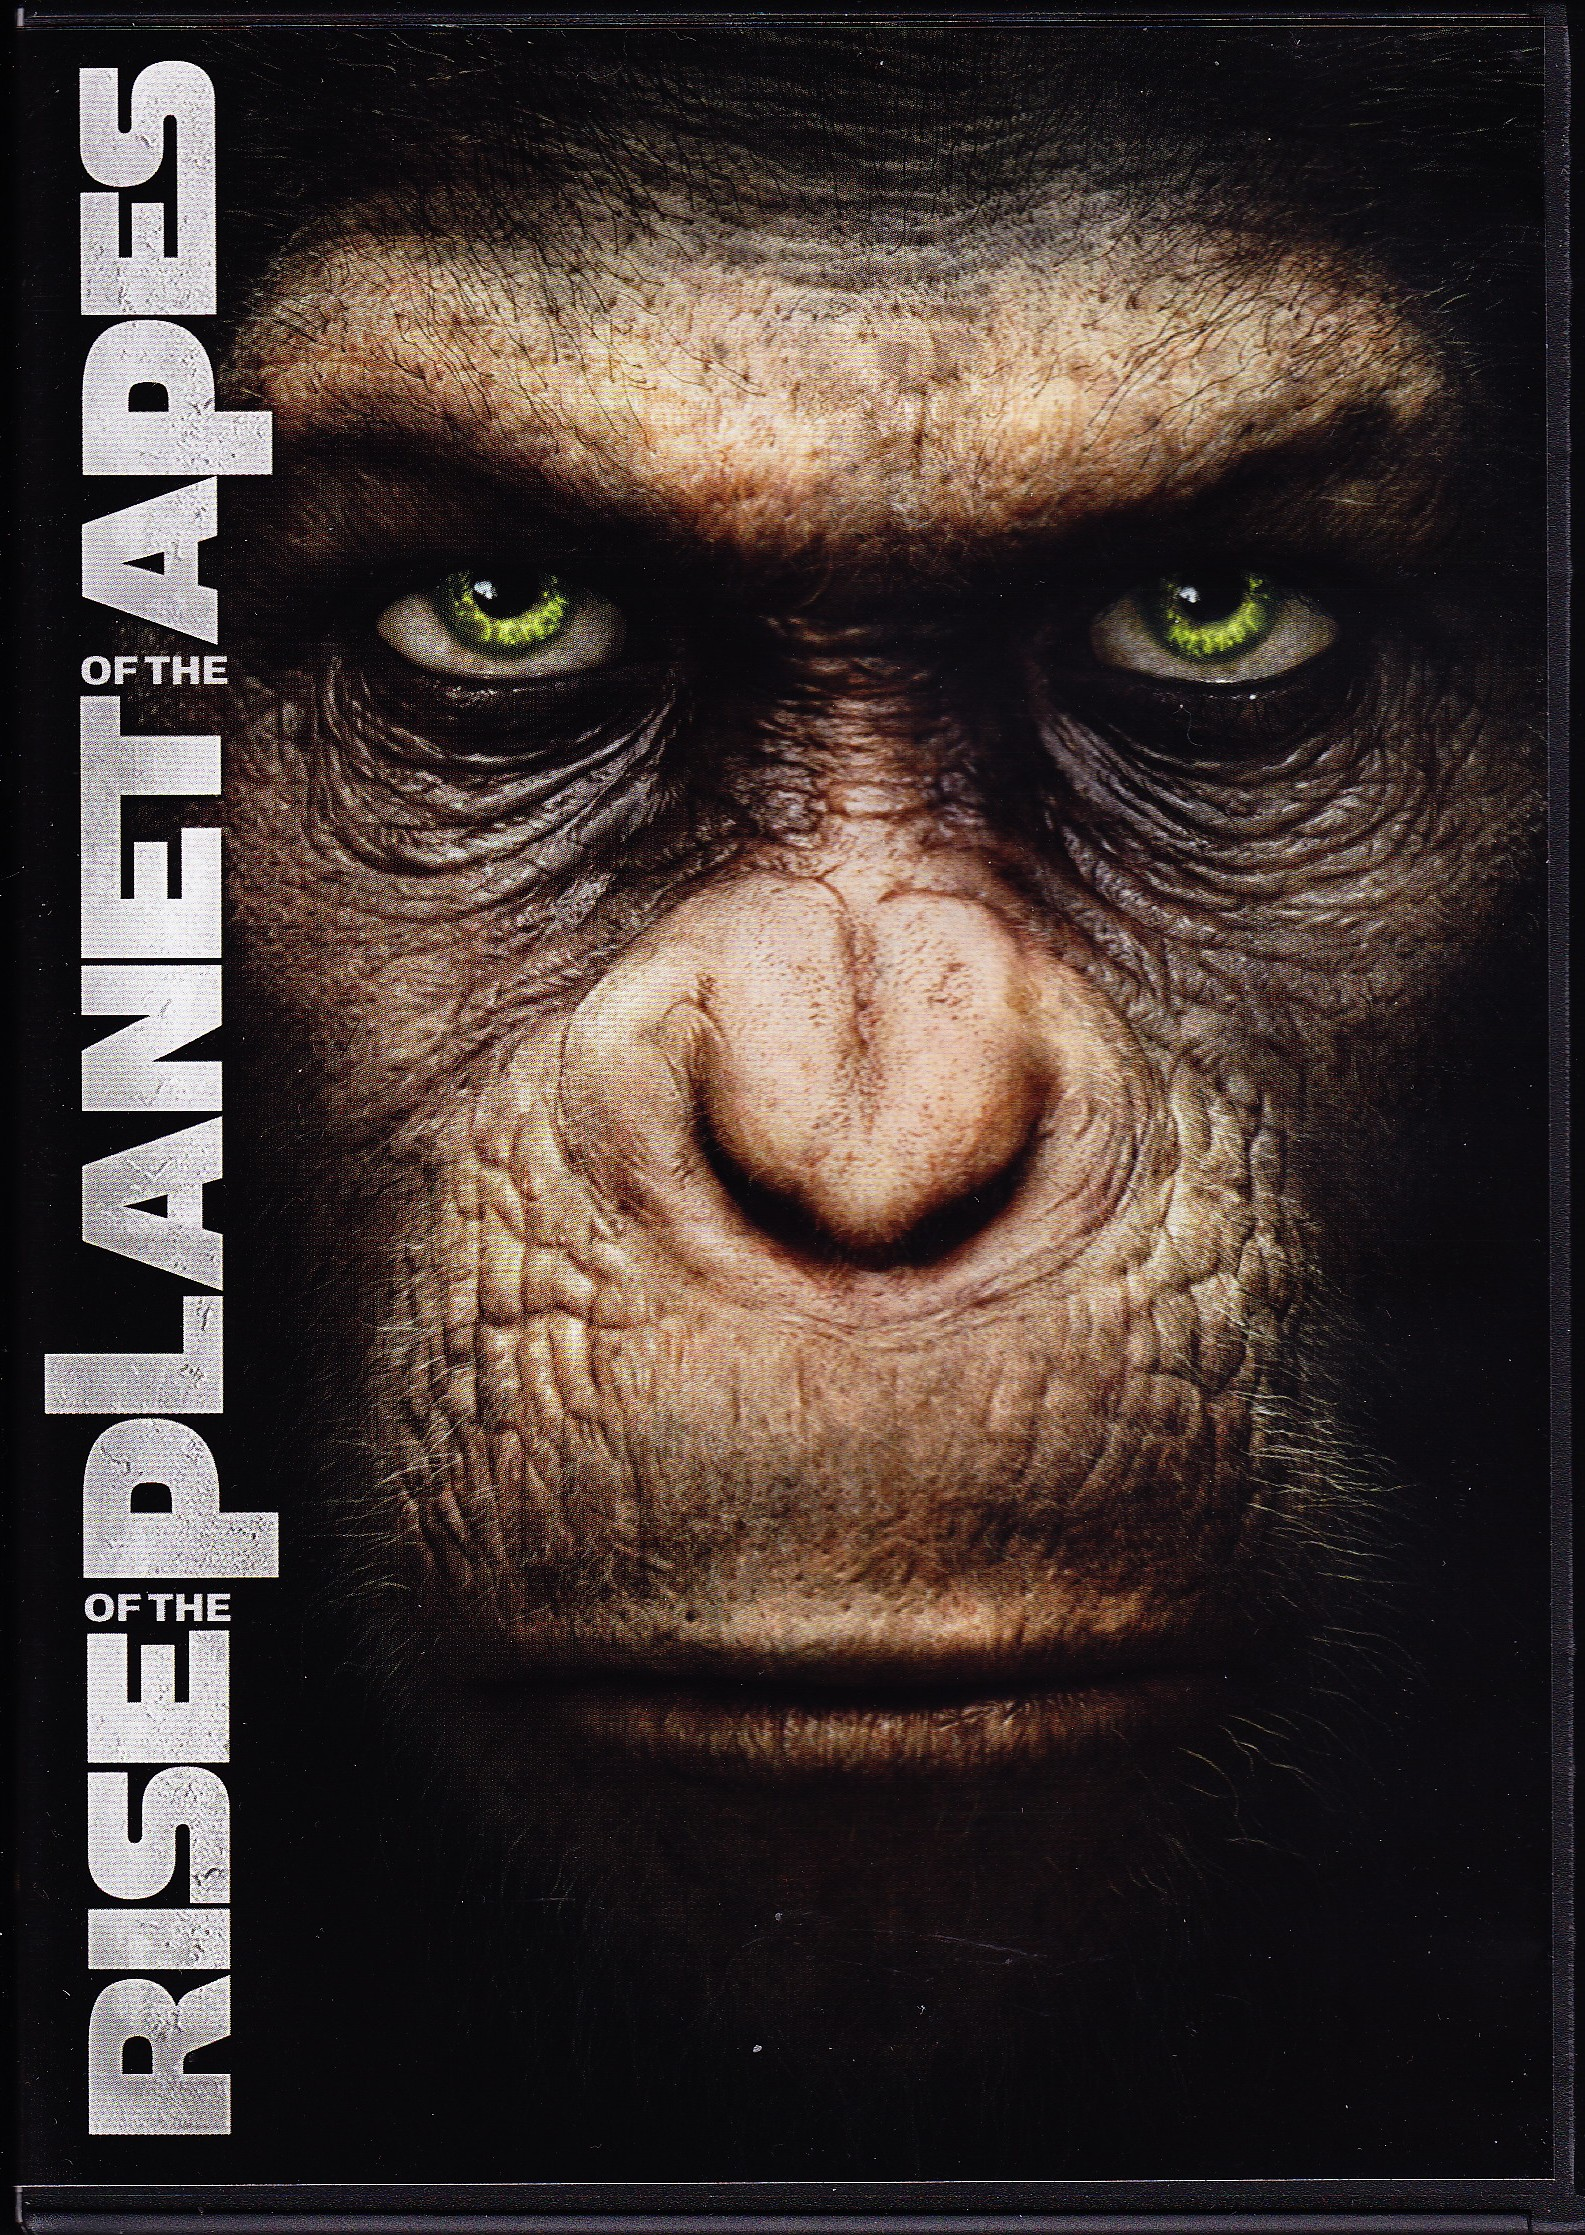 planet of the apes influences If you're looking, the influences of serling's background and ethnicity on planet of the apes are obvious serling envisioned a society of the future in which elements of judaism were.